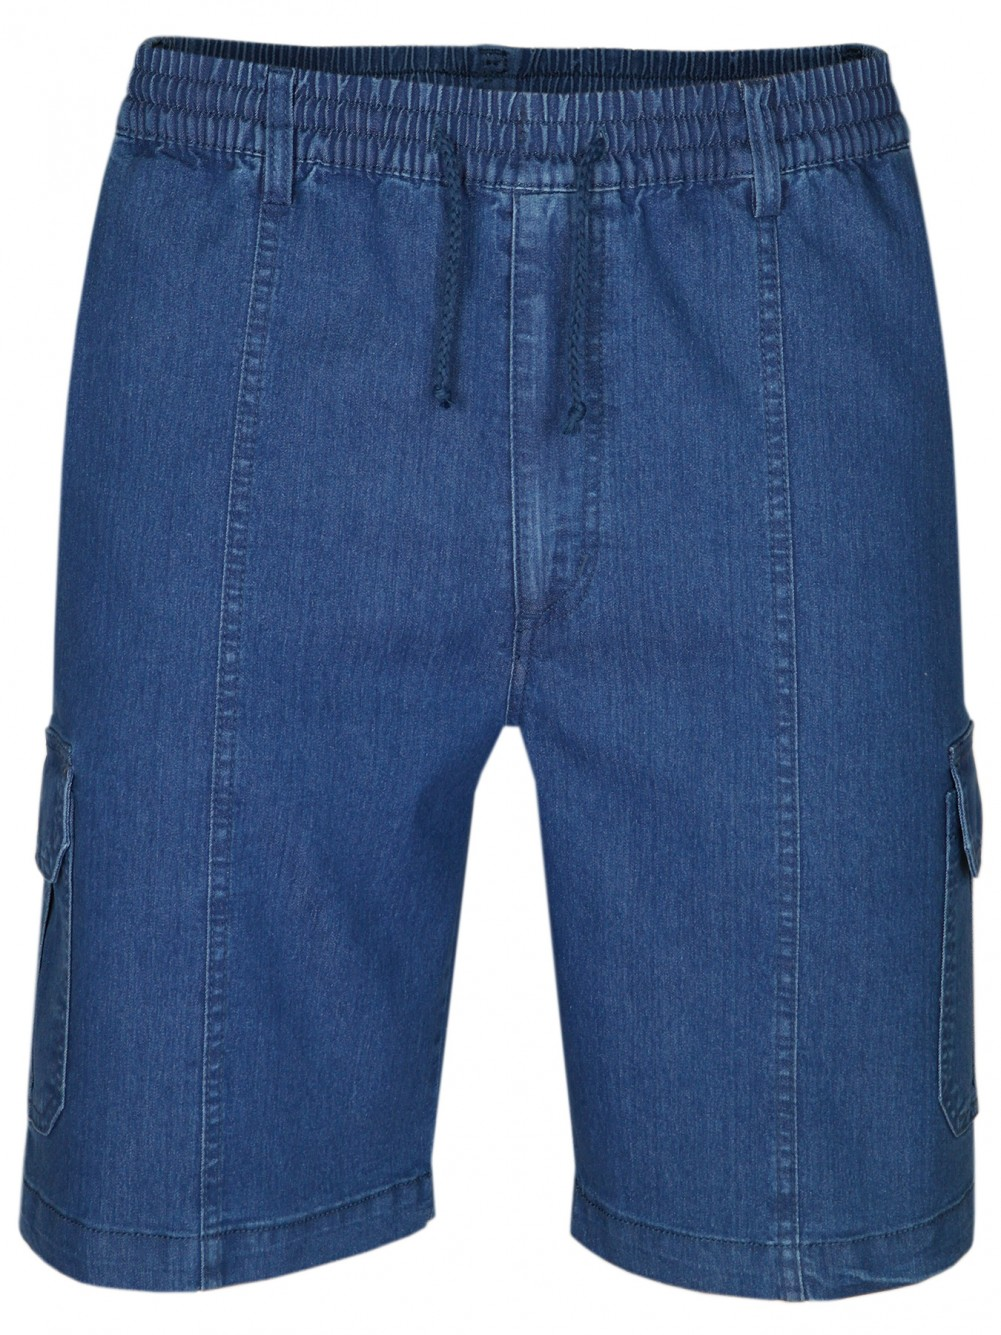 Herren Stretch Jeans-Shorts mit Schlupfbund - Blue